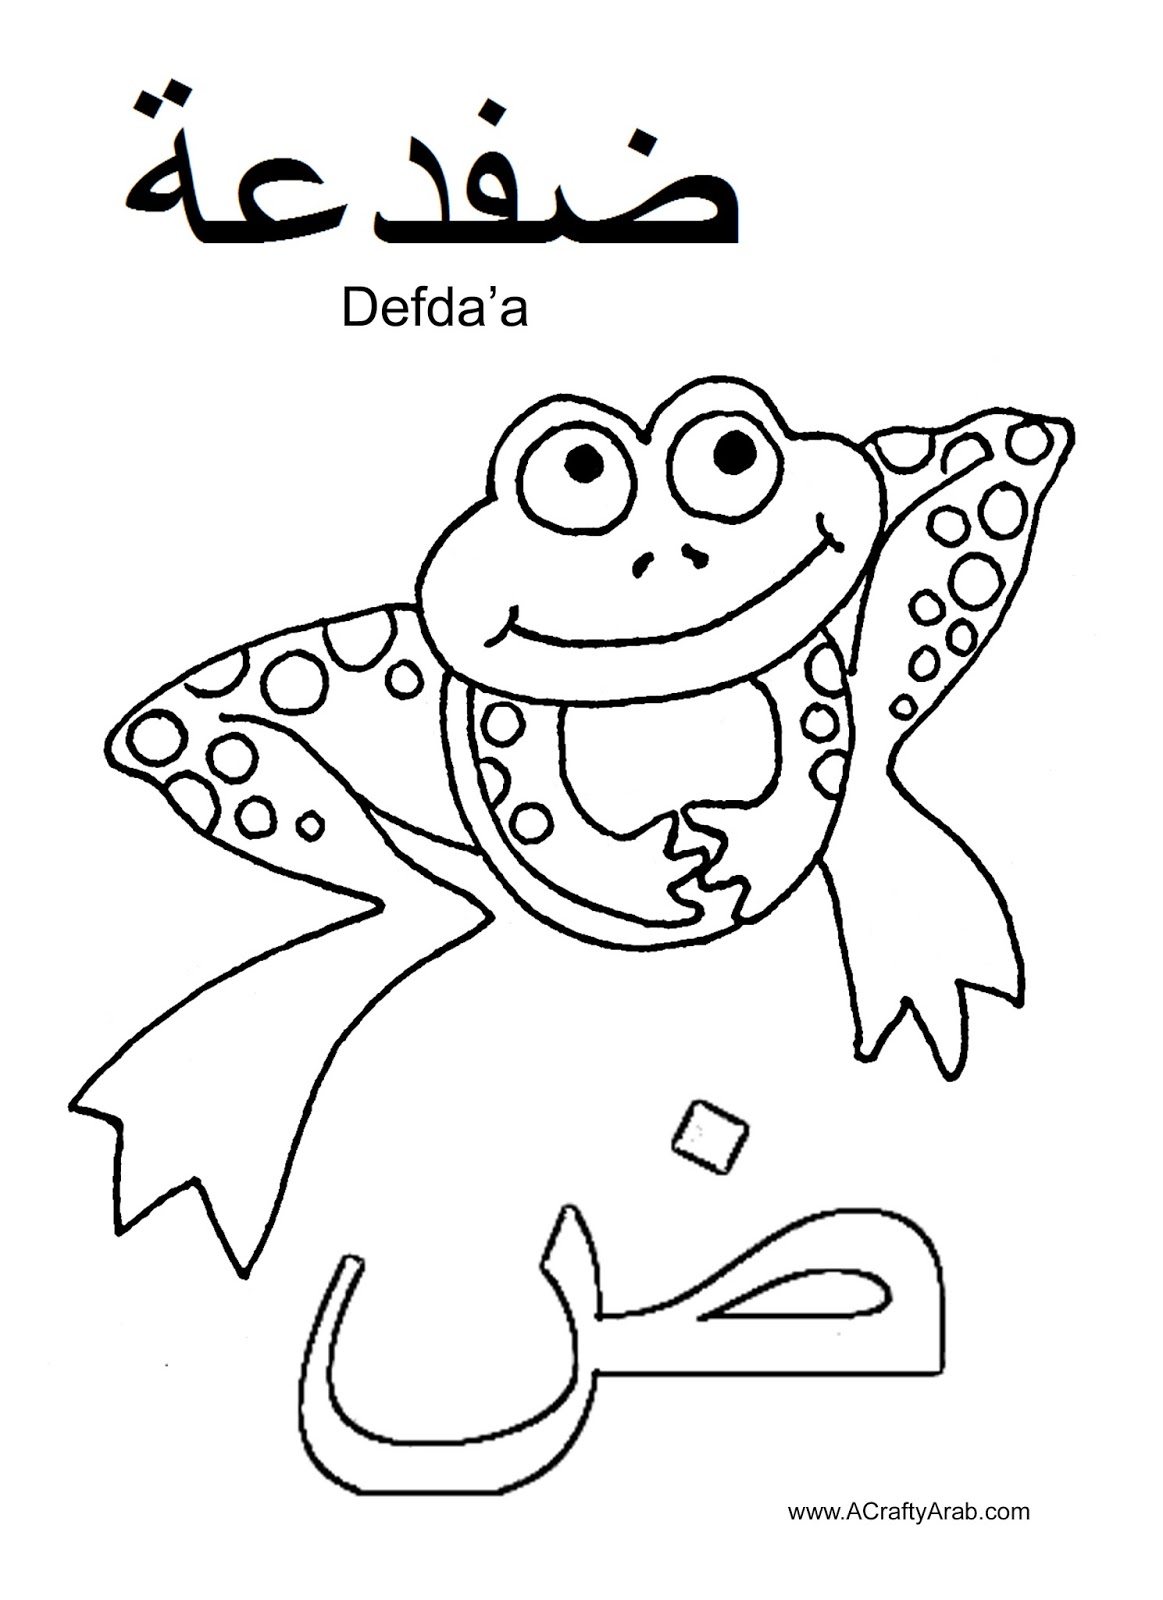 Arabic alphabet coloring pages sketch coloring page for Arabic coloring pages